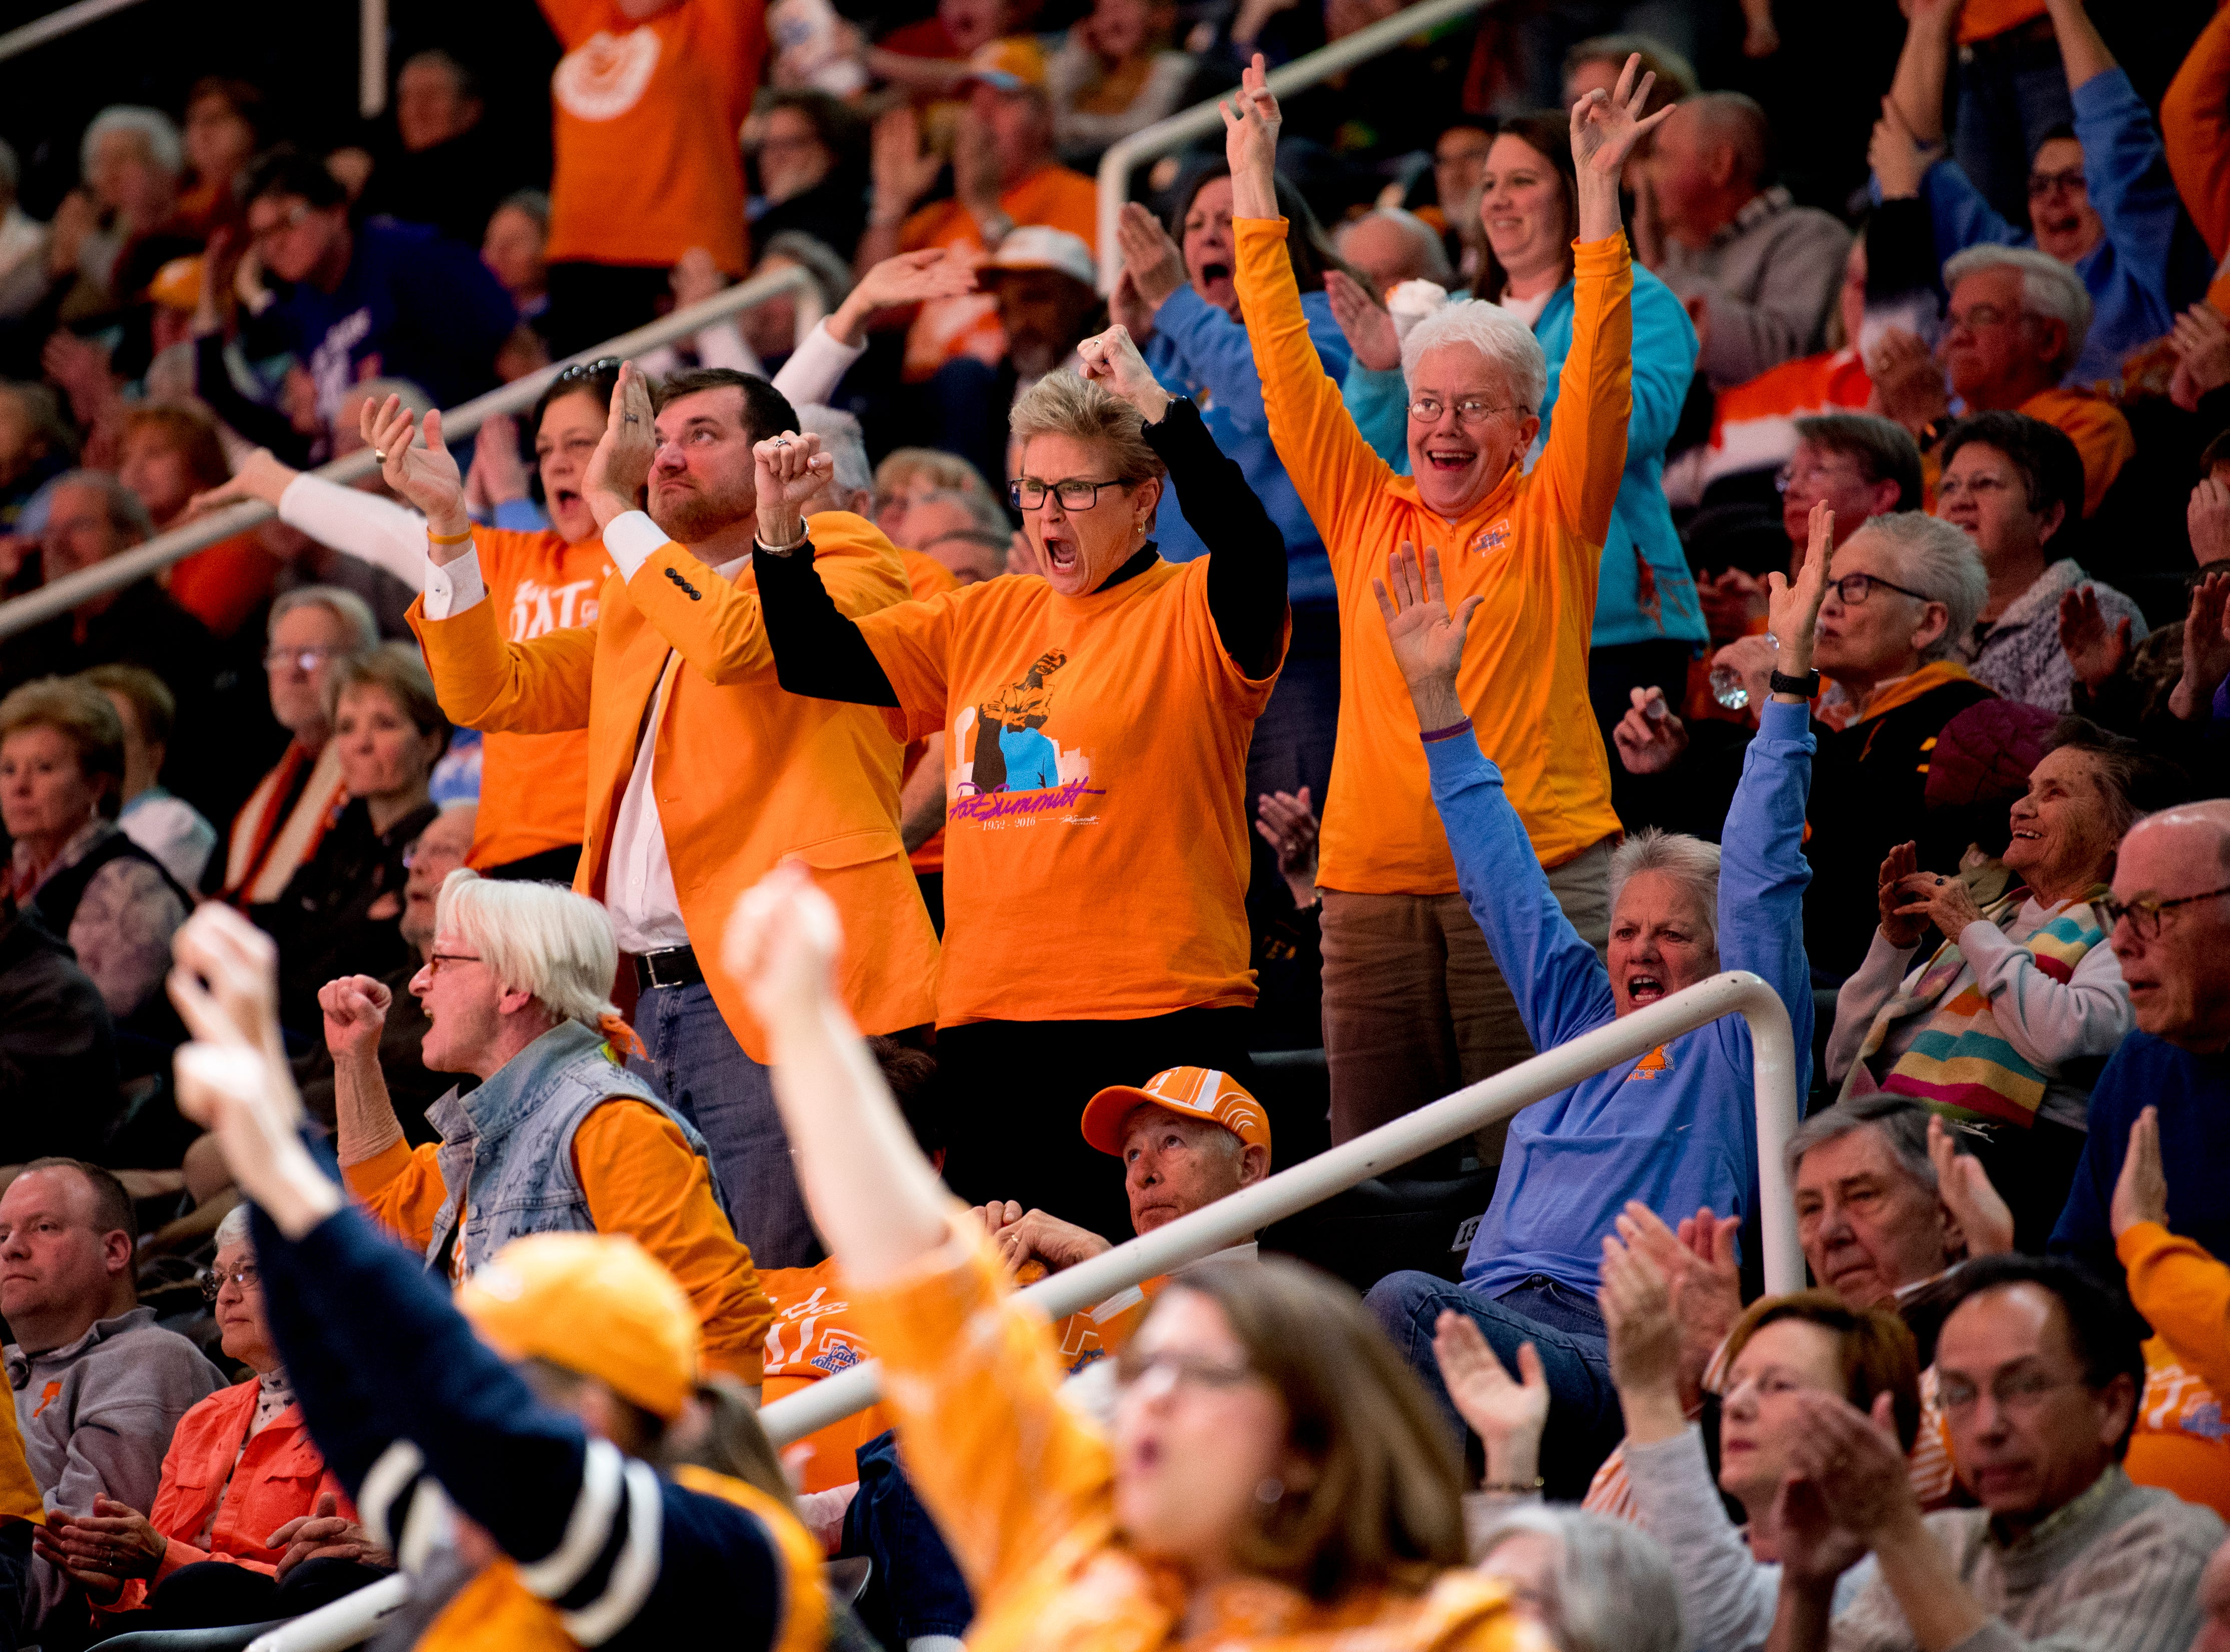 Lady Vol fans cheer as the team ties with Arkansas during a game at Thompson-Boling Arena in Knoxville, Tennessee on Monday, January 21, 2019.